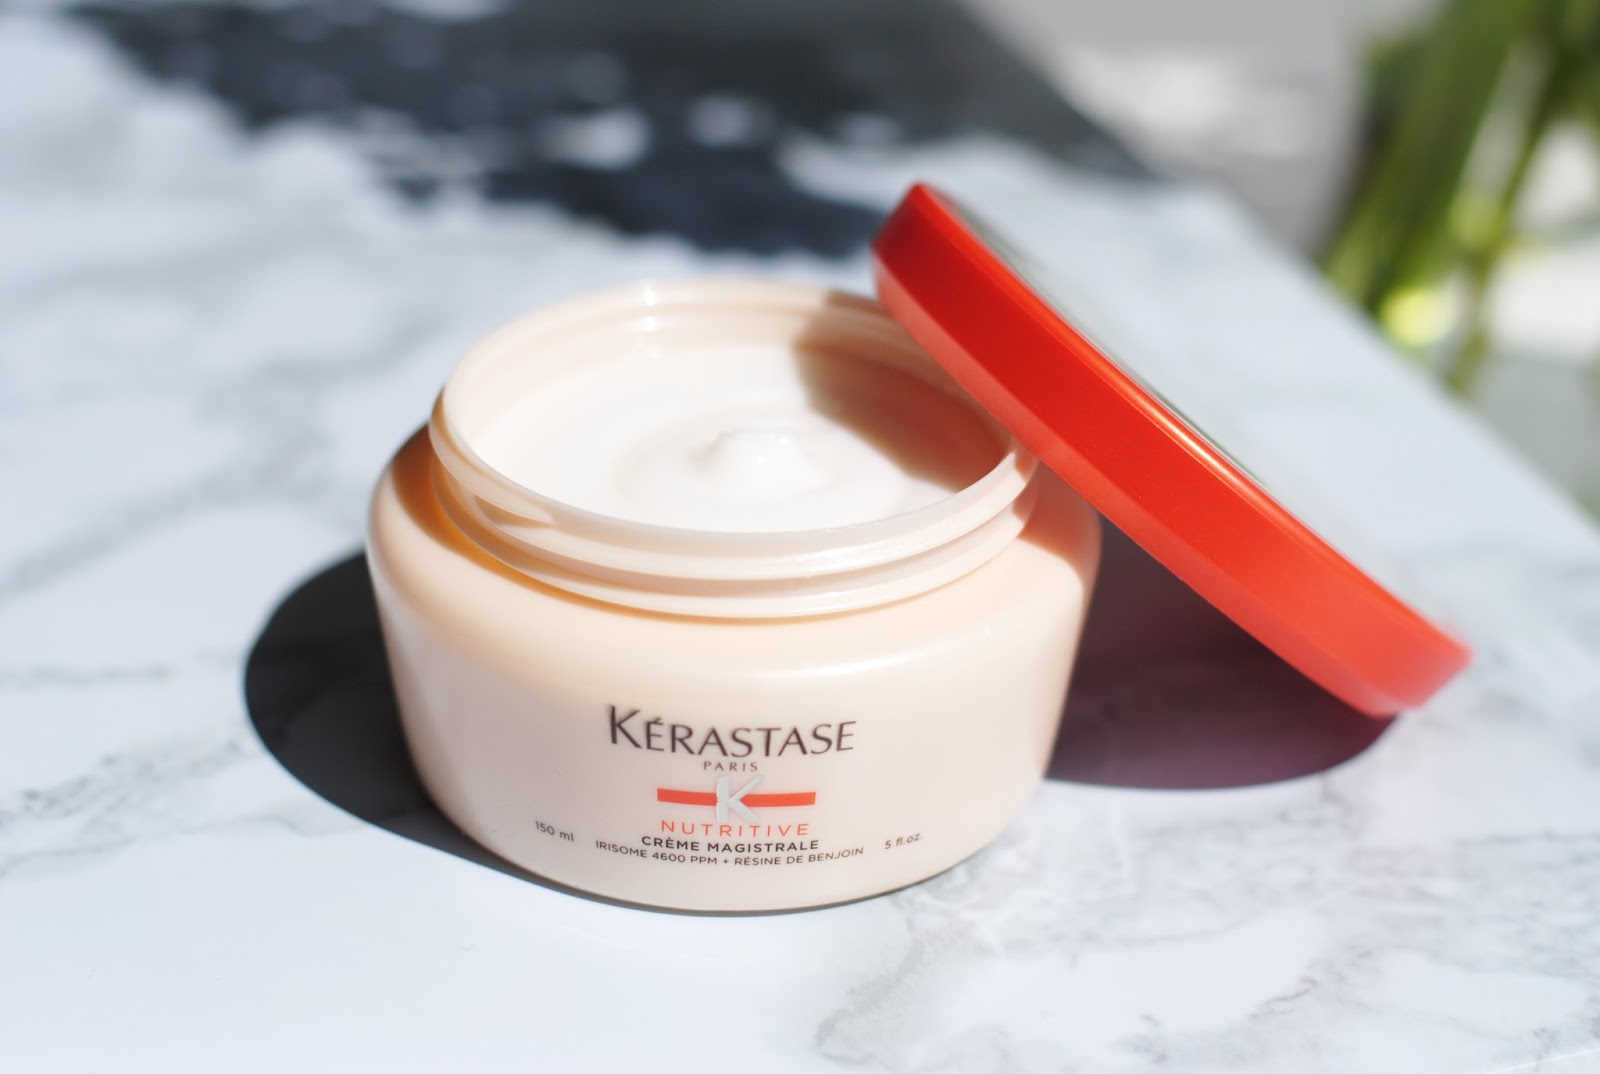 CRÈME MAGISTRALE  This nutritive balm was designed to treat and texturize severely dried-out hair.